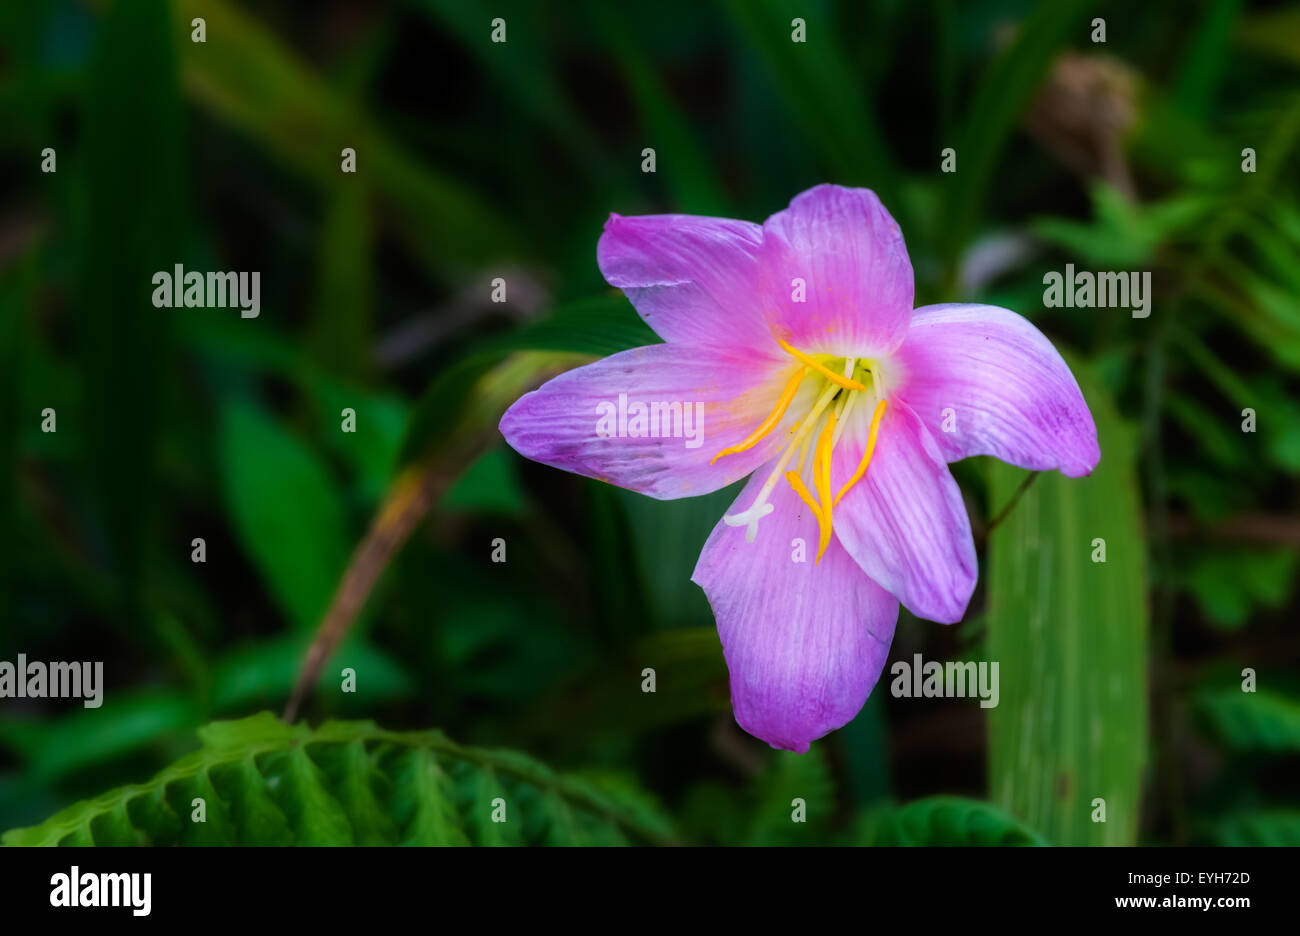 A wildflower of bright pink and yellow colors blooming in the Himalayan Hills of North Bengal with copy space - Stock Image